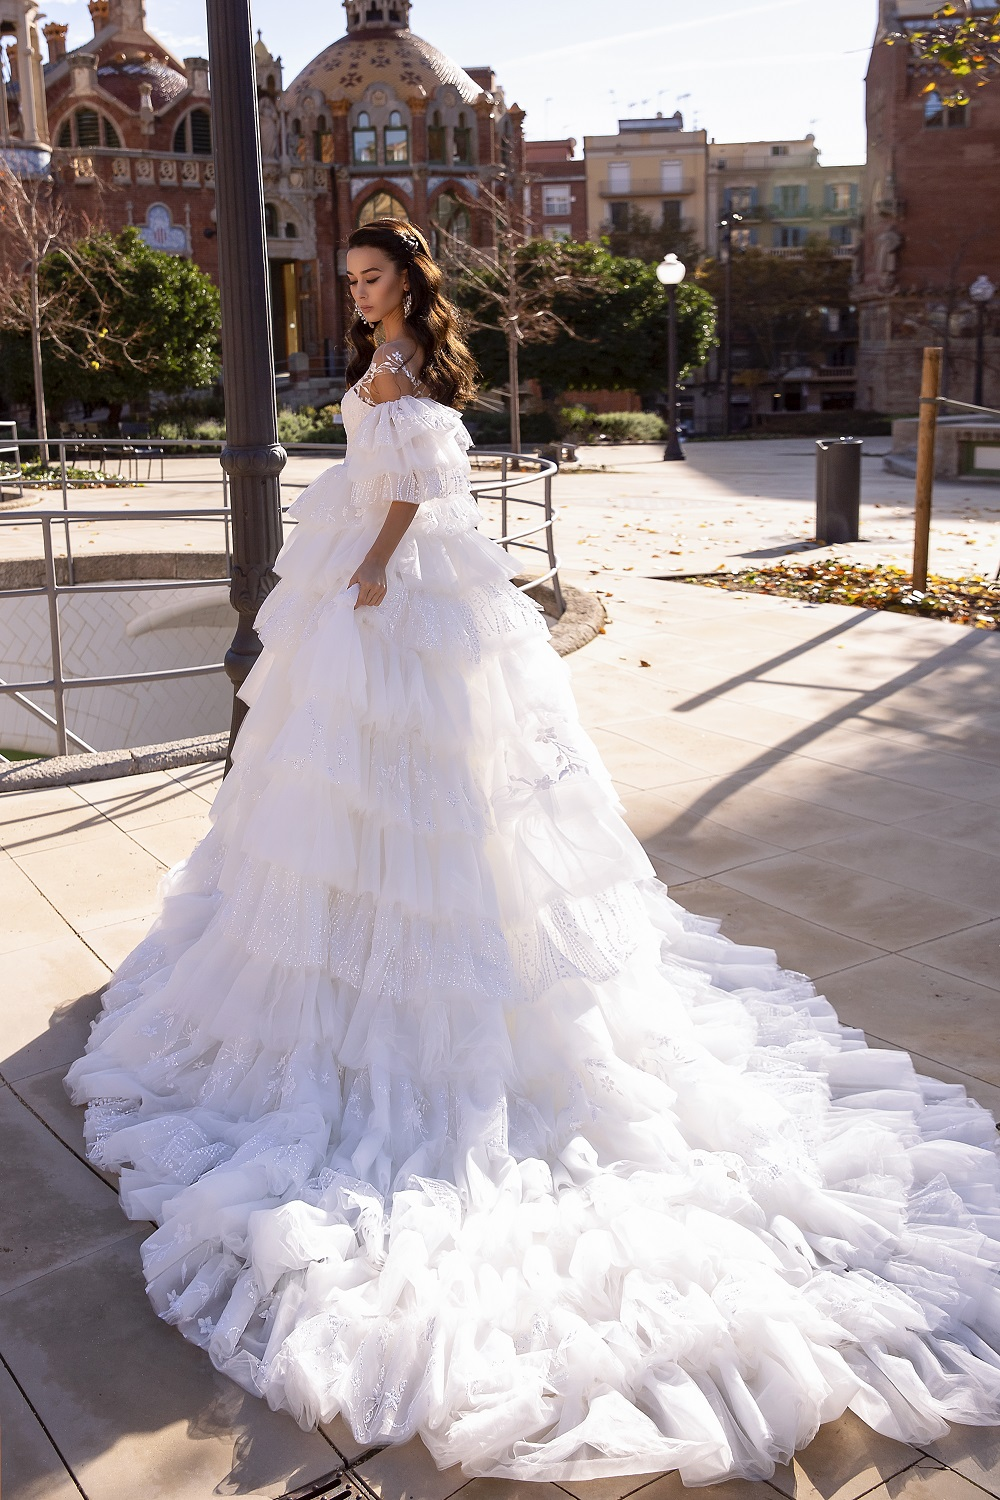 The Comprehensive Guide To Types Of Wedding Dress Tina Valerdi,Stylish Beautiful Dresses To Wear To A Wedding As A Guest